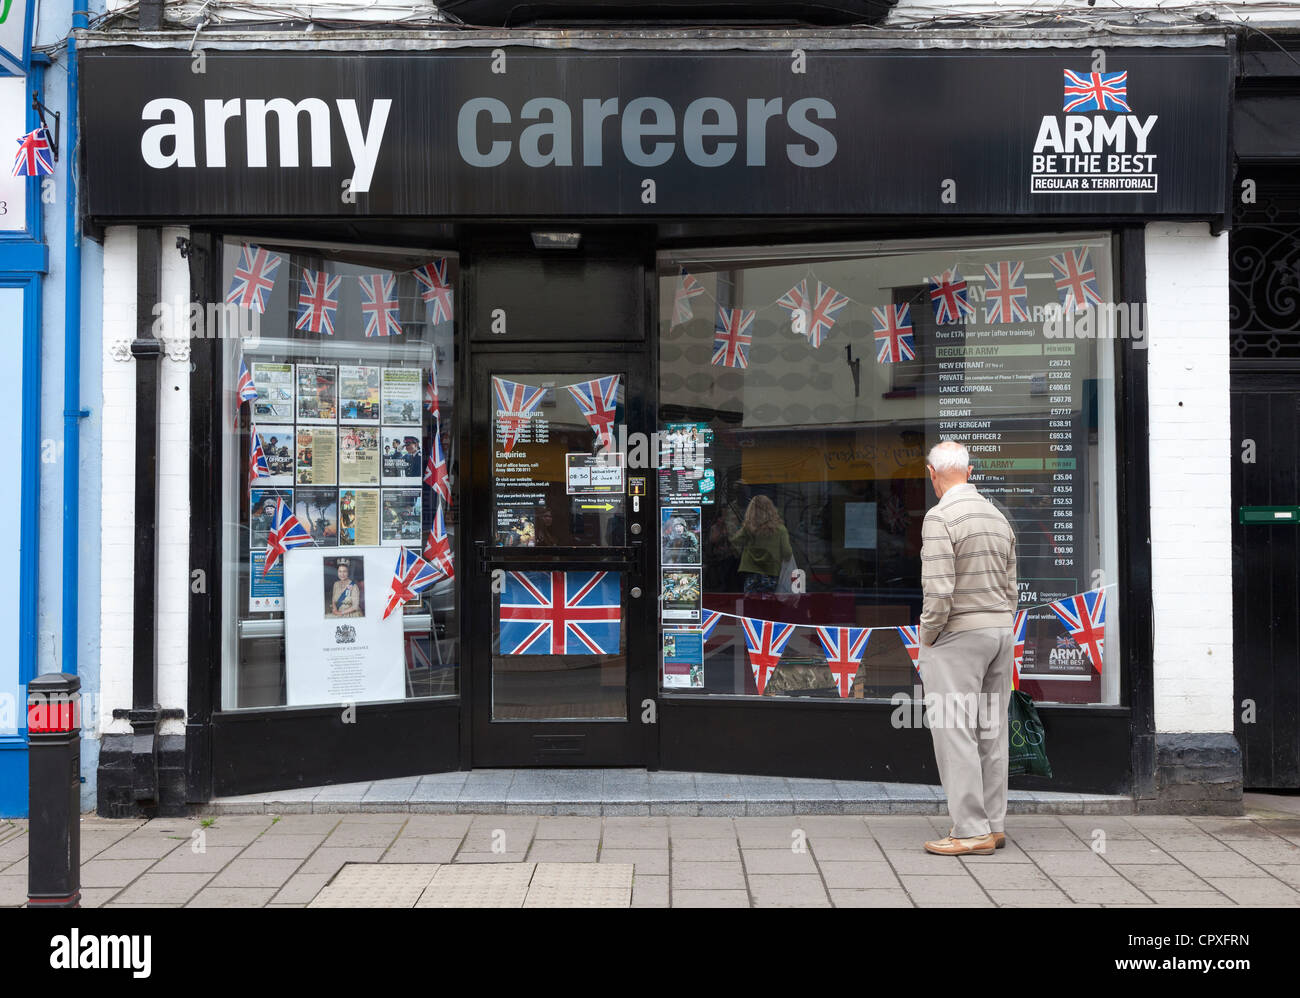 Man looking in window of Army Careers recruiting office, Abergavenny, Wales, UK Stock Photo